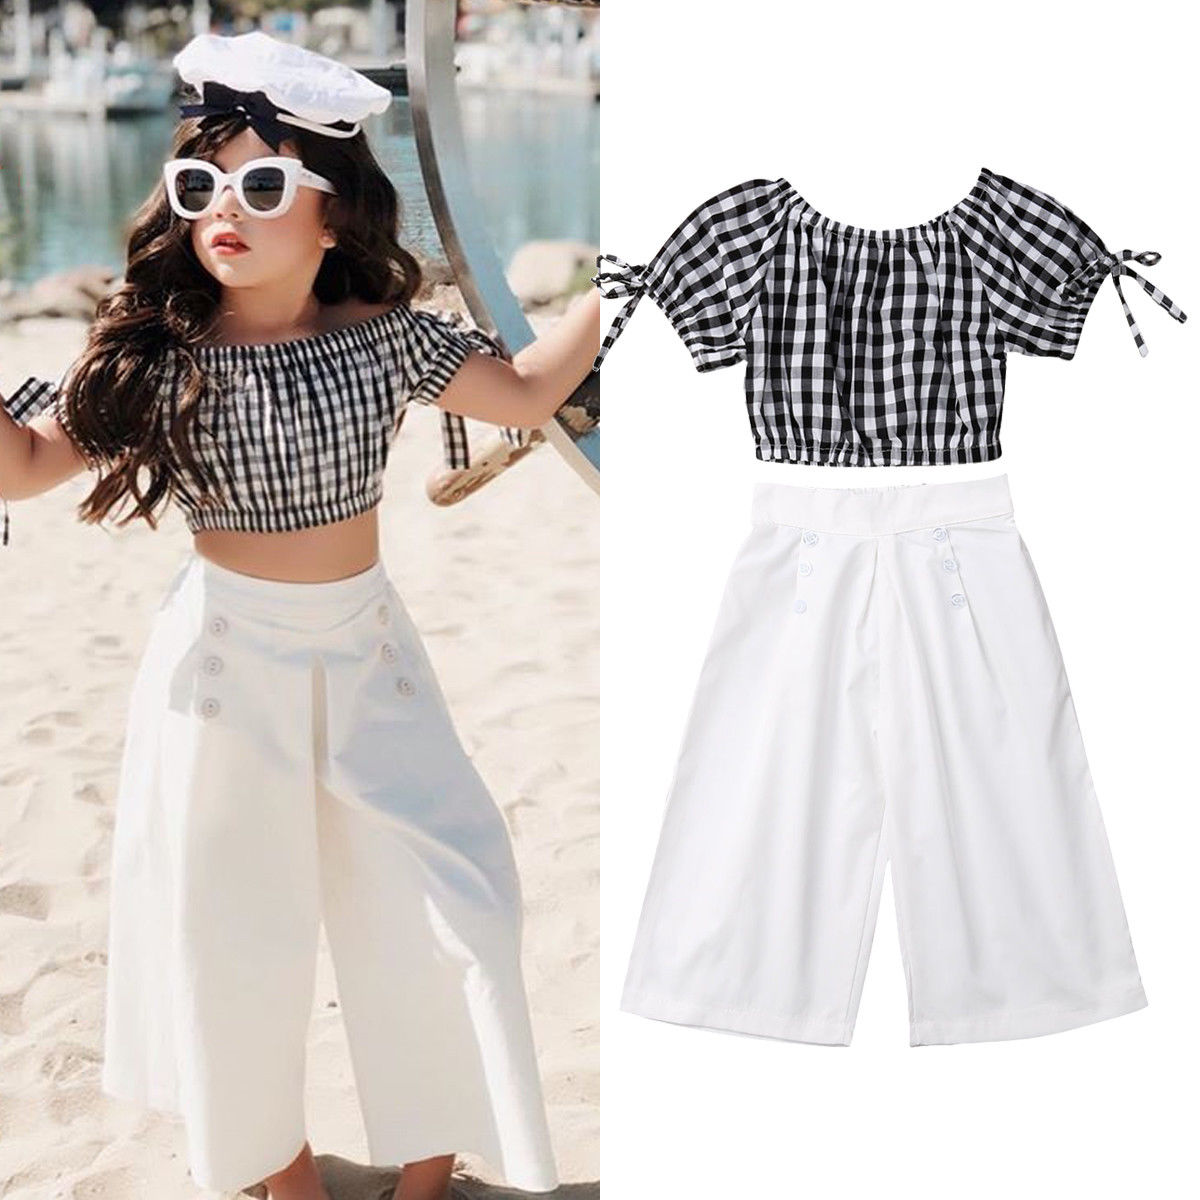 41d7c92abe9bdd 2019 Summer Kids Baby Girls Off Shoulder Plaid Checks Tops T Shirt + Long  White Pants Outfits Fashion Clothes-in Clothing Sets from Mother & Kids on  ...